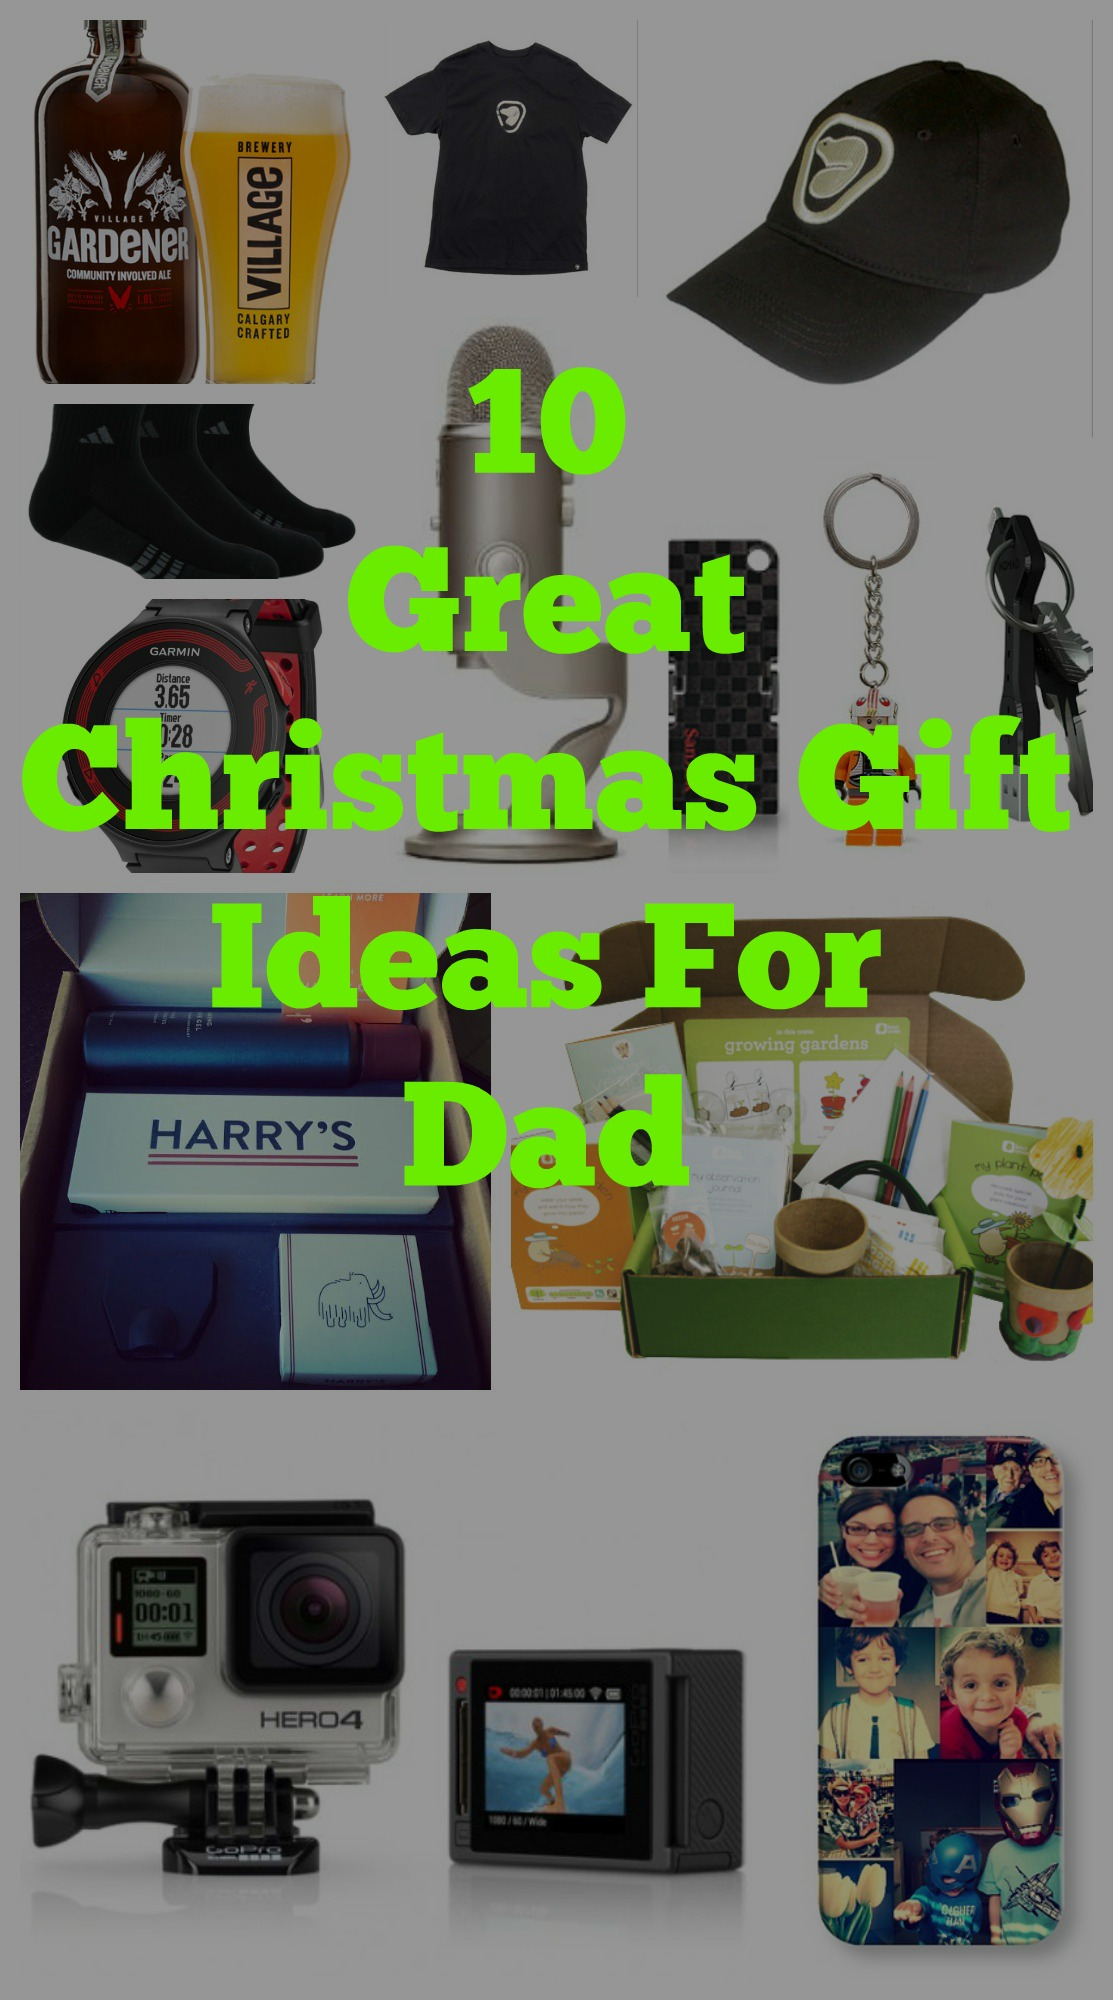 10 Great Christmas Gift Ideas for Dads